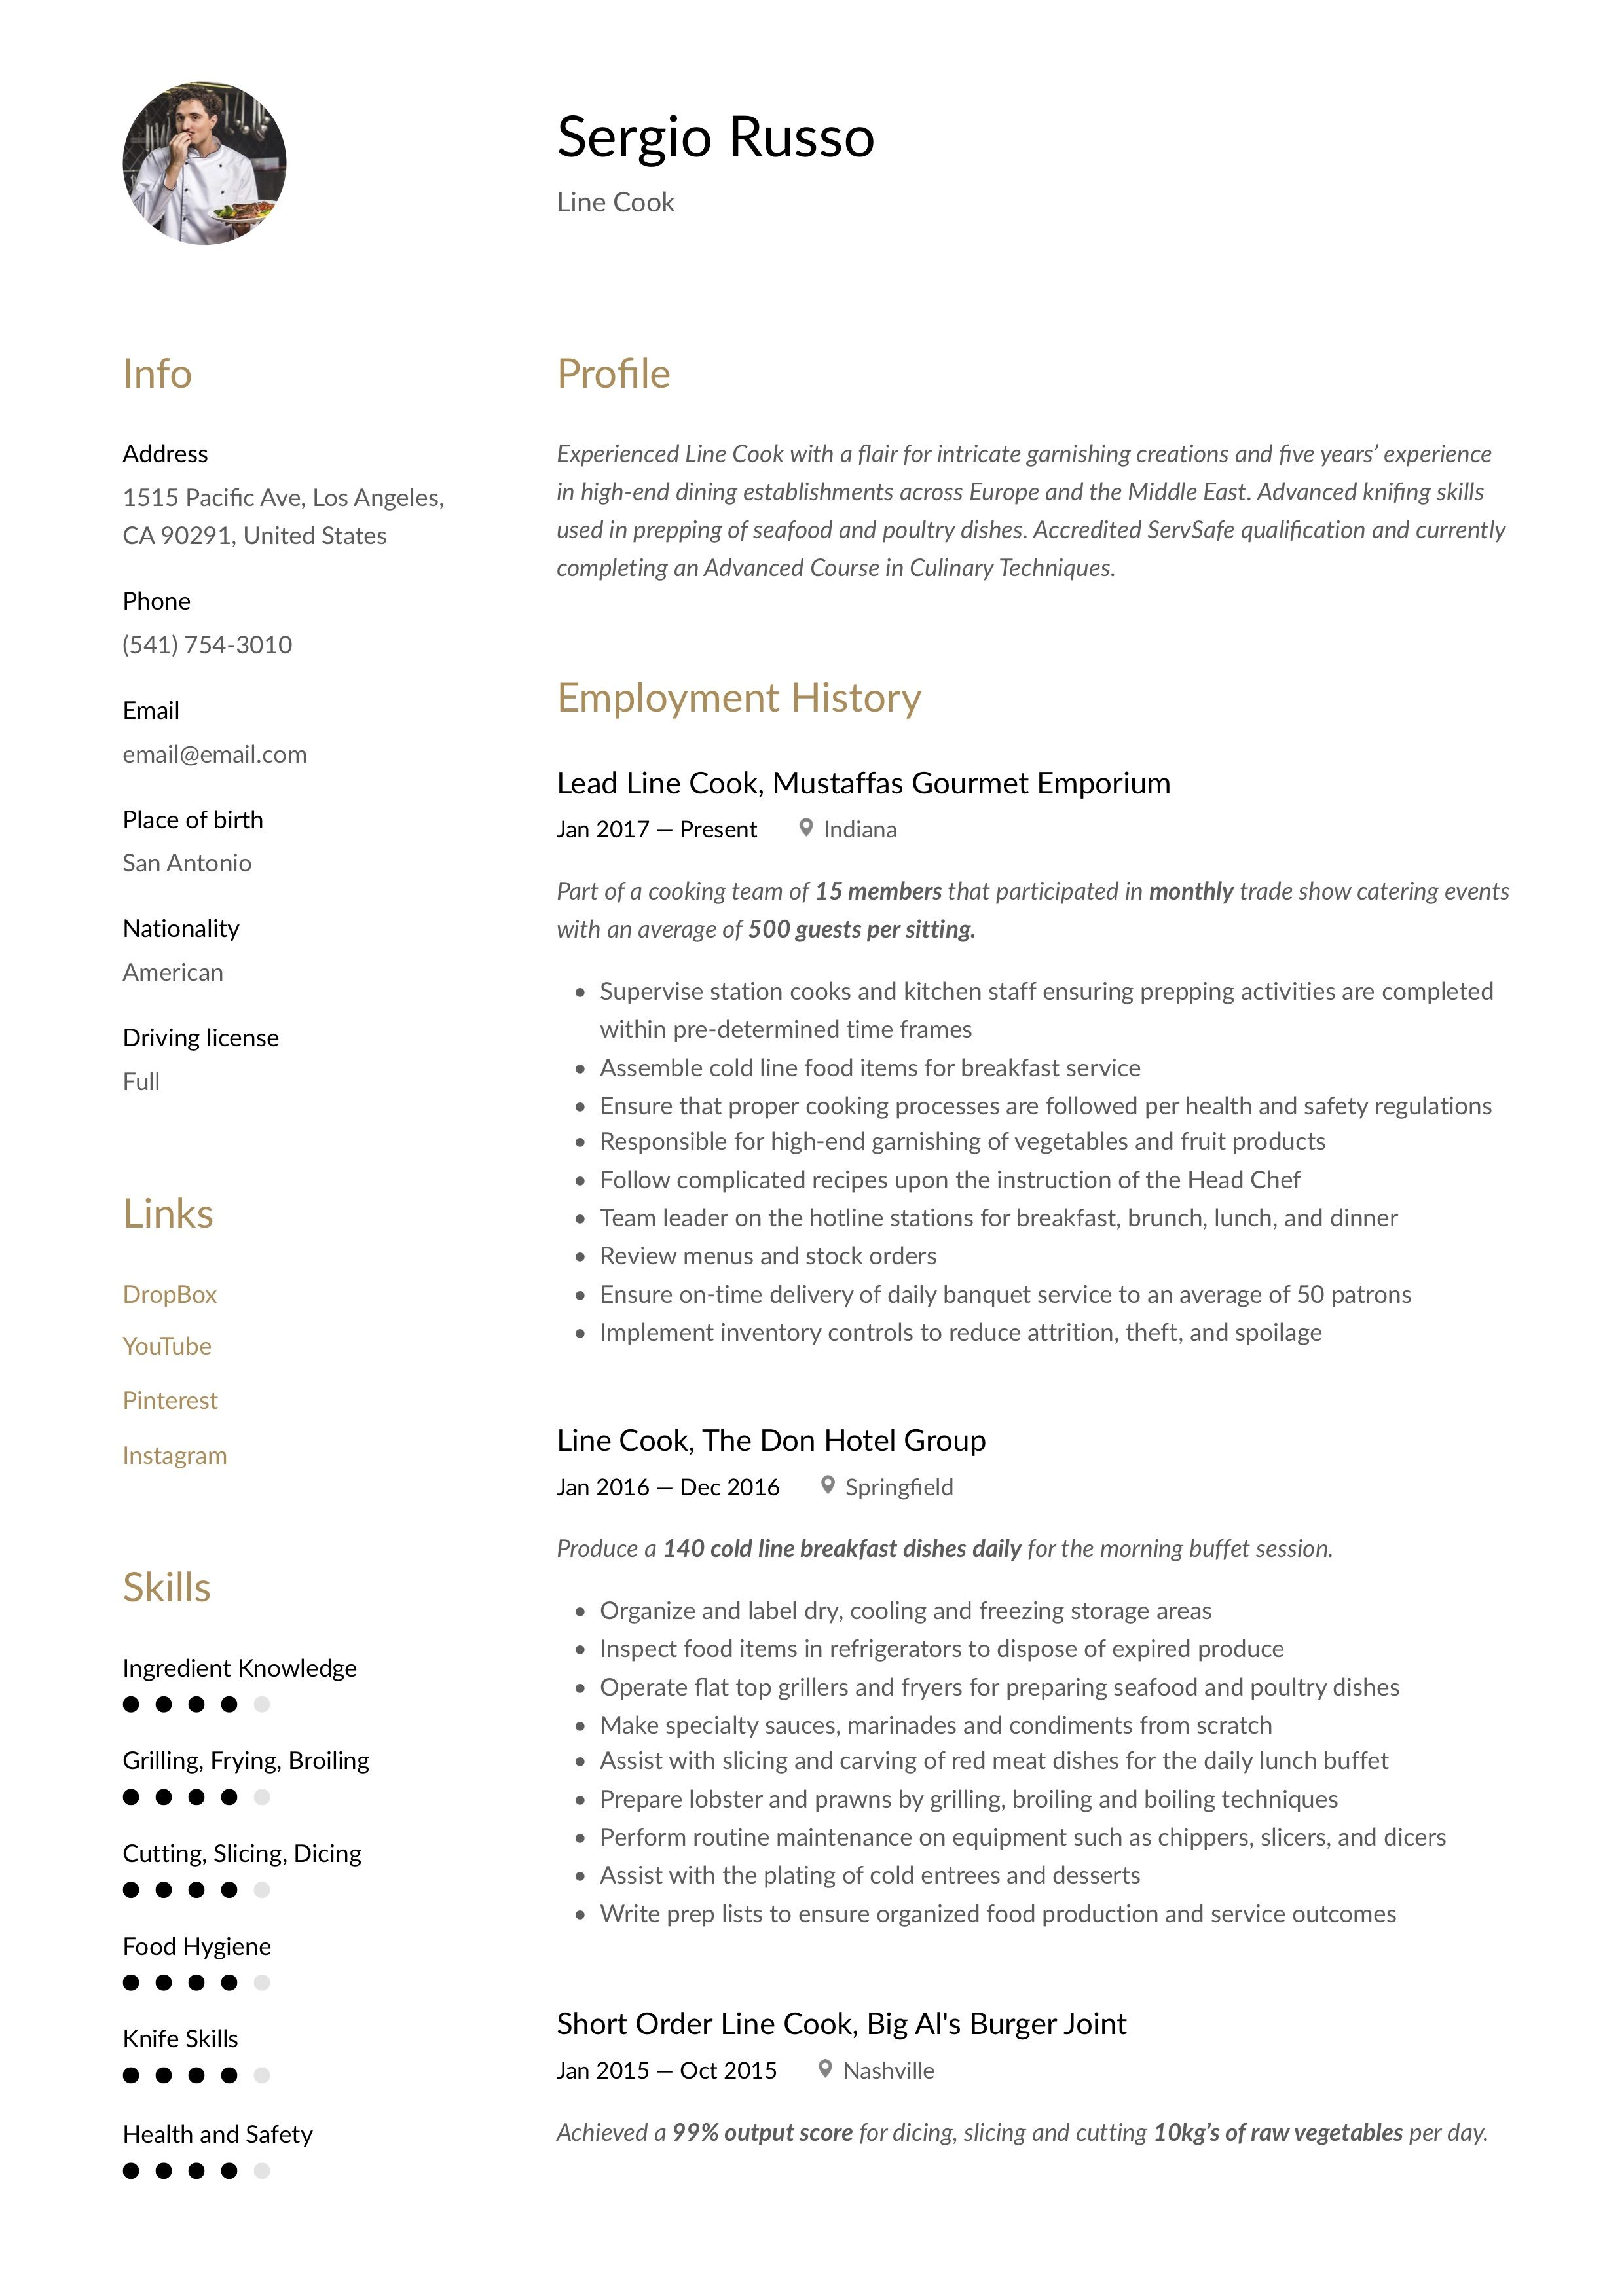 Line Cook Resume & Writing Guide in 2020 (With images